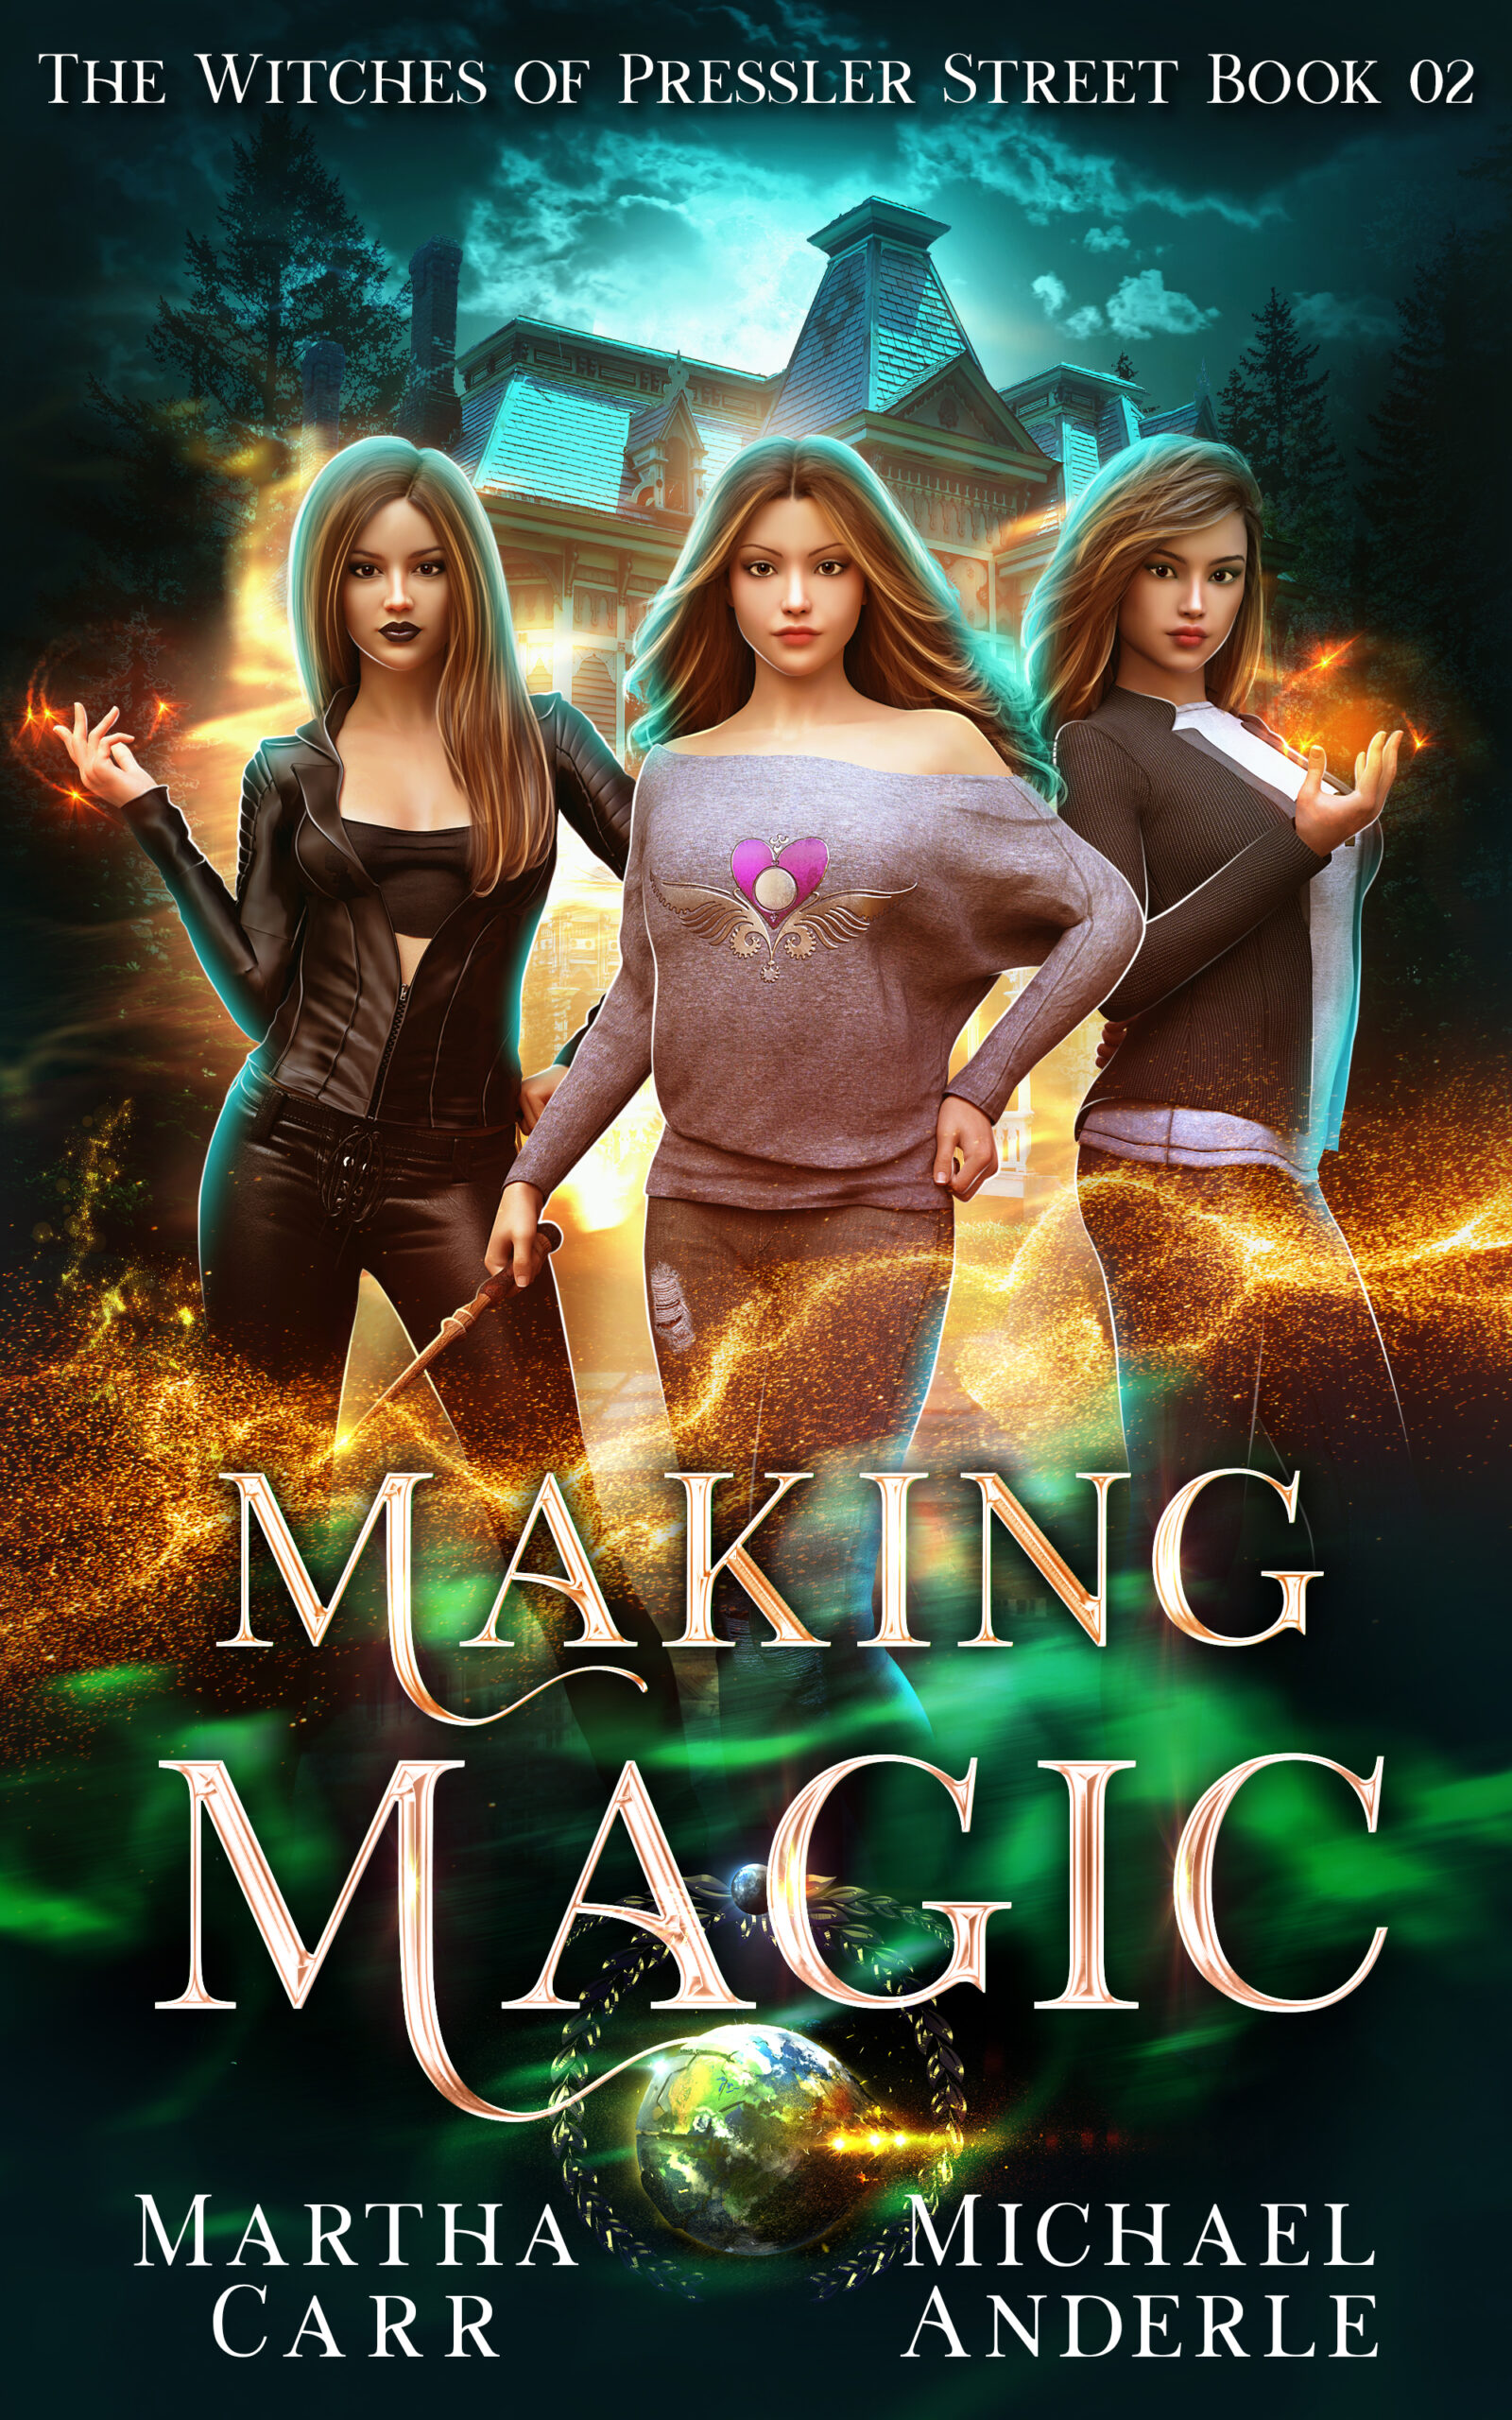 The Witches of Pressler Street Book 2: Making Magic